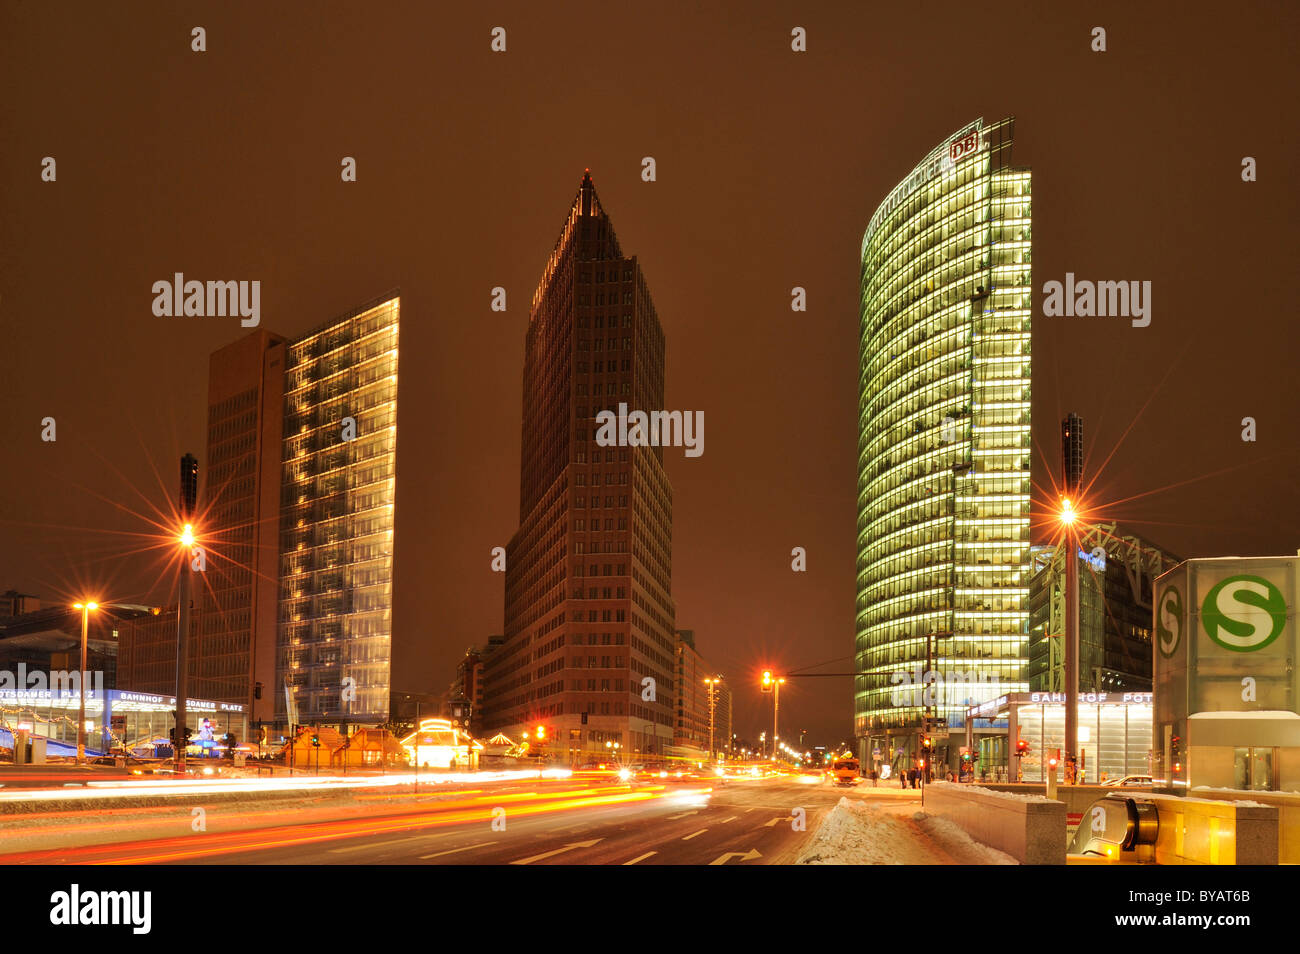 Skyscrapers on Potsdamer Platz, Chrysler Building, Sony Center, DB Tower and Beisheim Center with Ritz Carlton Hotel - Stock Image